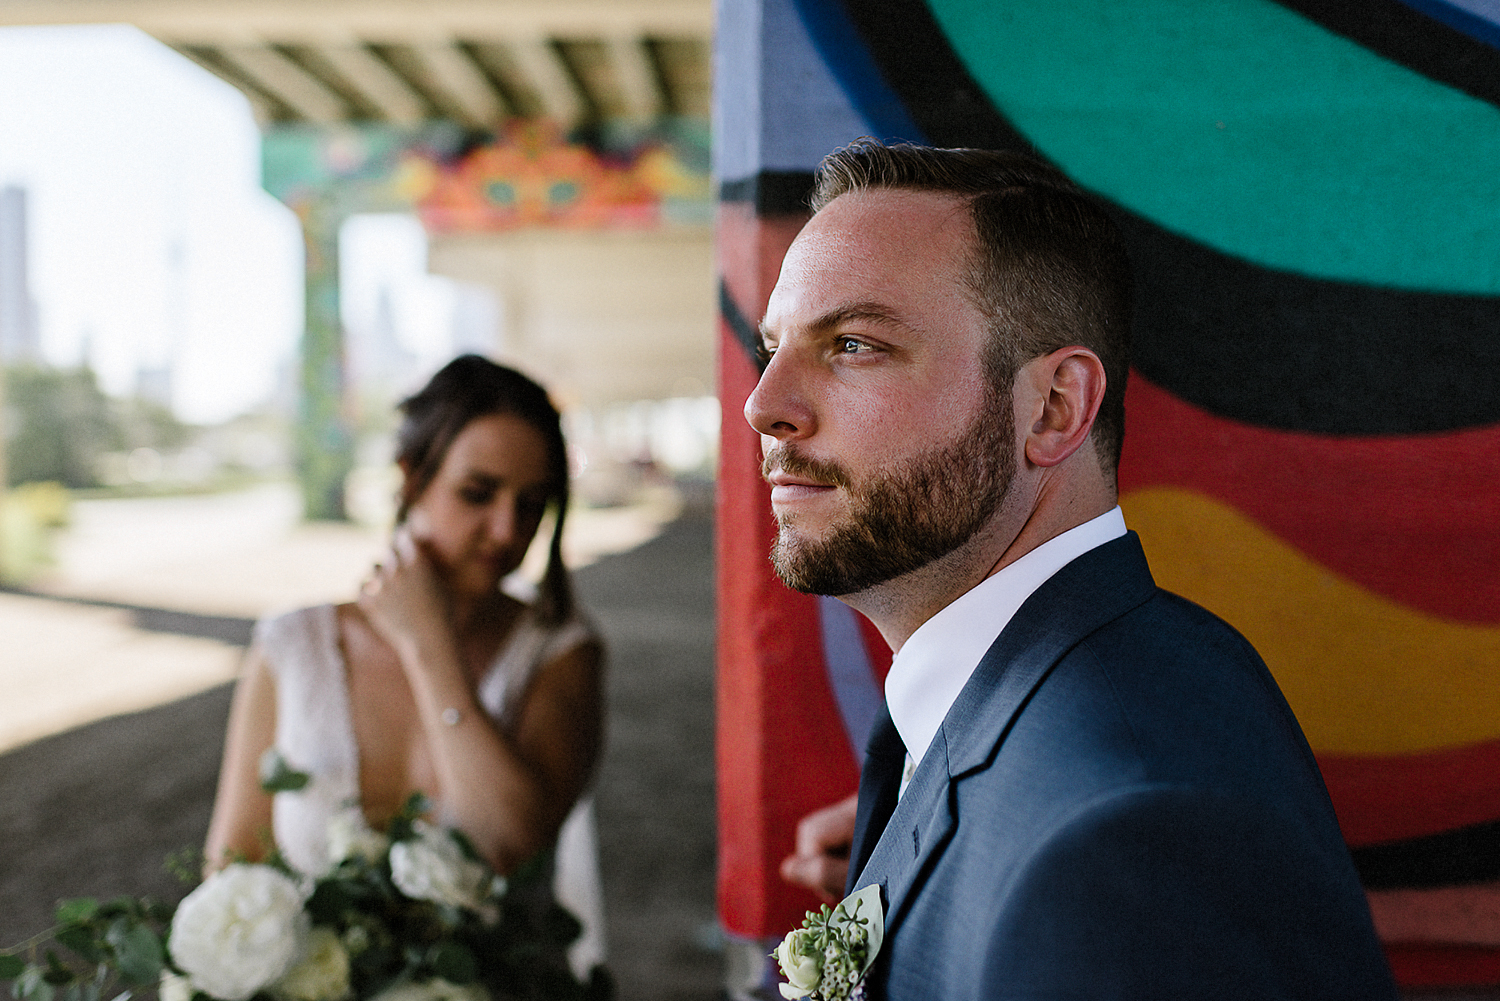 Intimate-Toronto-Pop-Up-Elopement-Downtown-Urban-film-analog-photography-toronto-wedding-photographers-alternative-hipster-bride-and-groom-badass-ceremony-groom-waiting.jpg